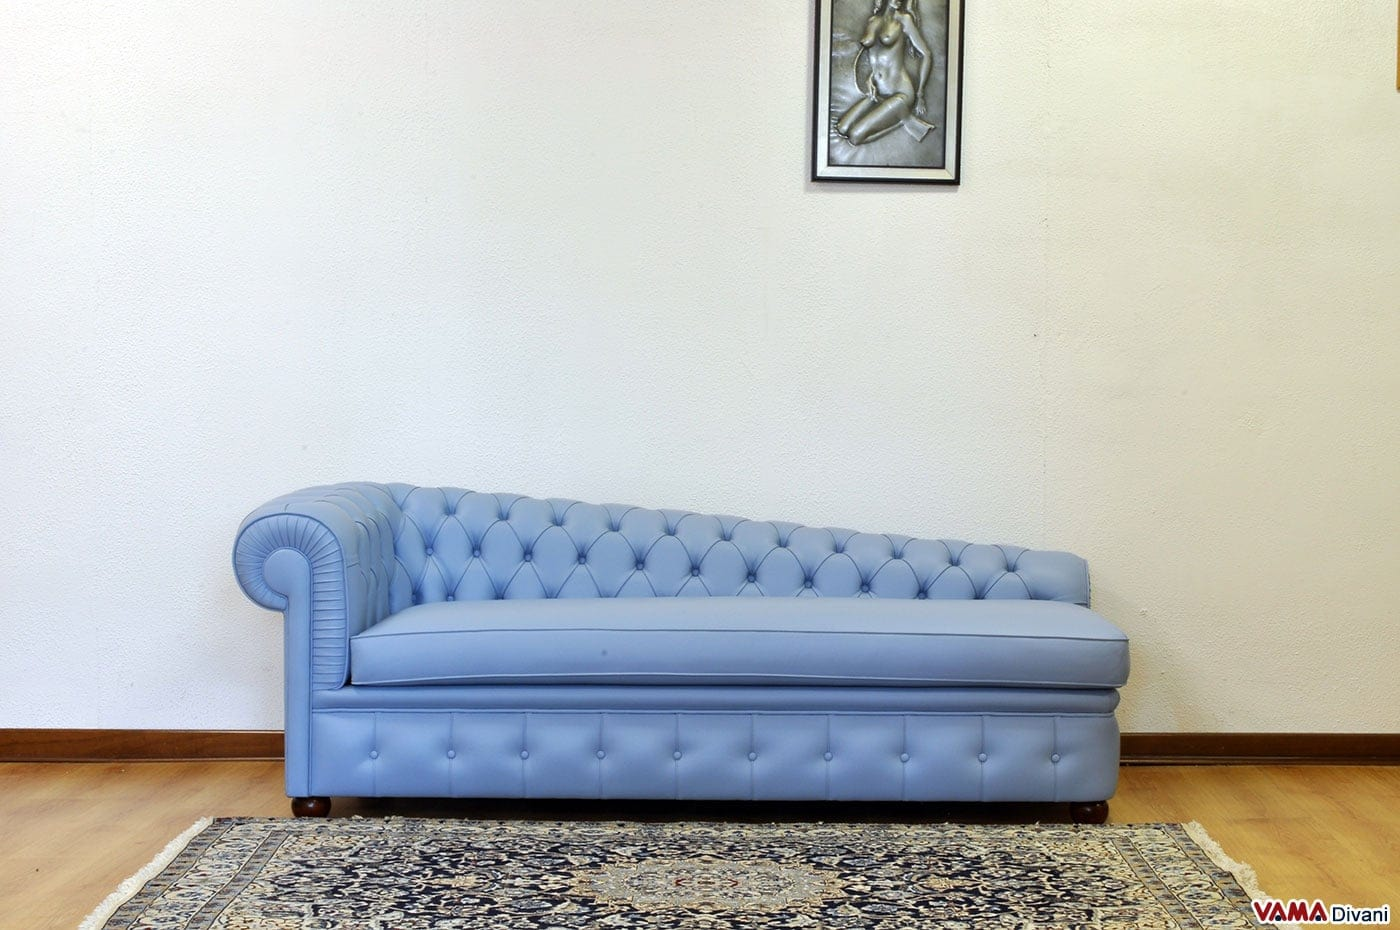 Dormeuse chesterfield